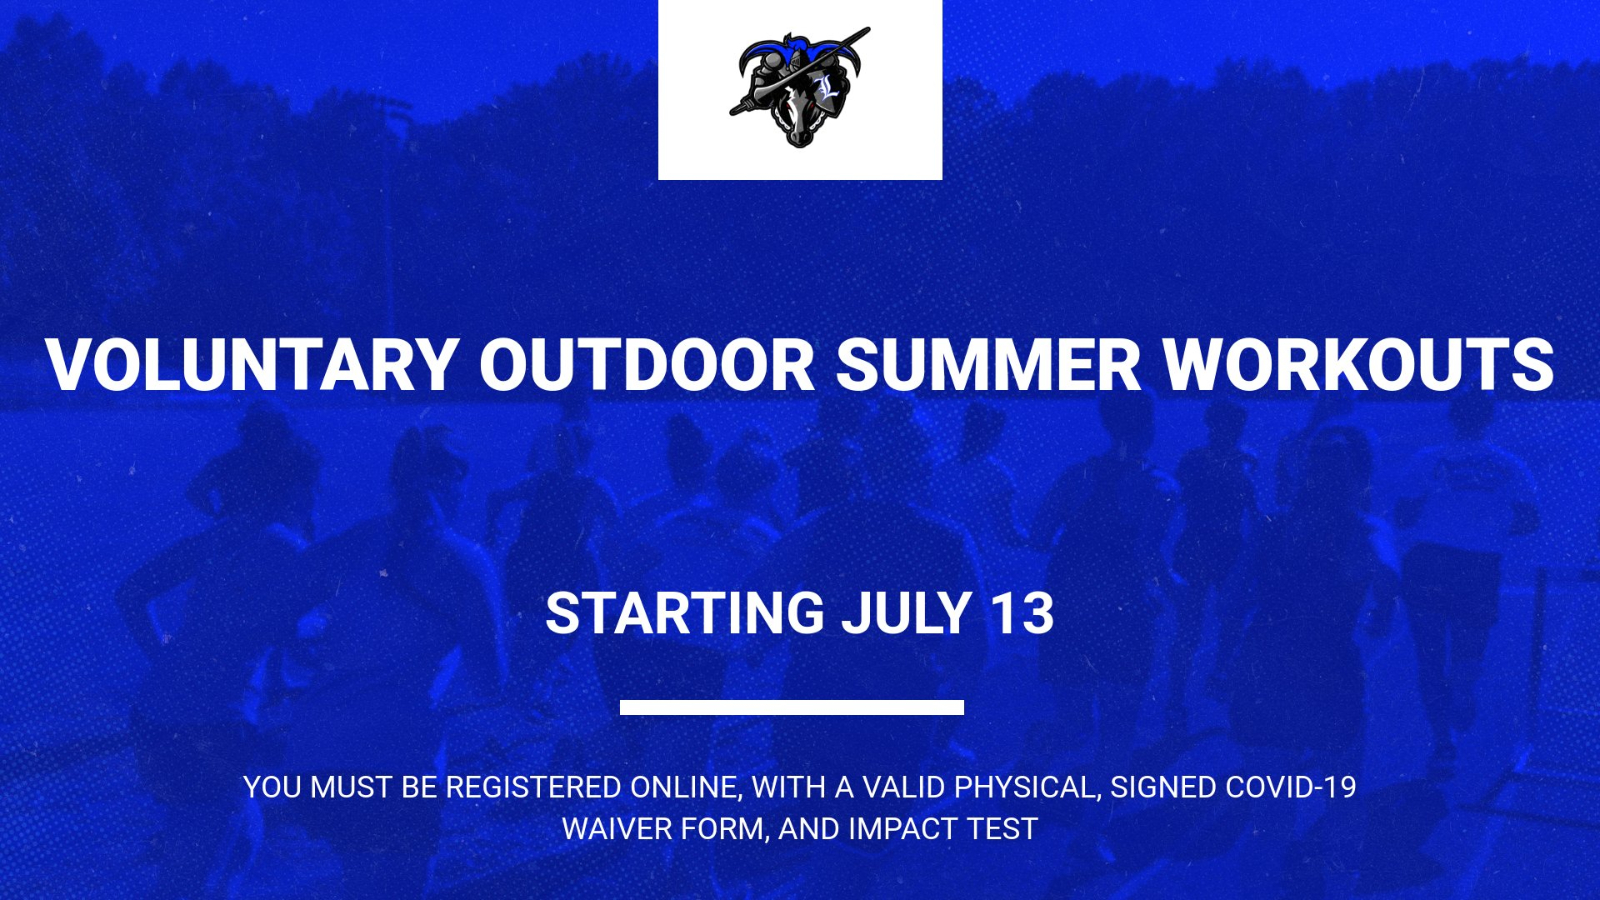 Voluntary Outdoor Summer Workouts